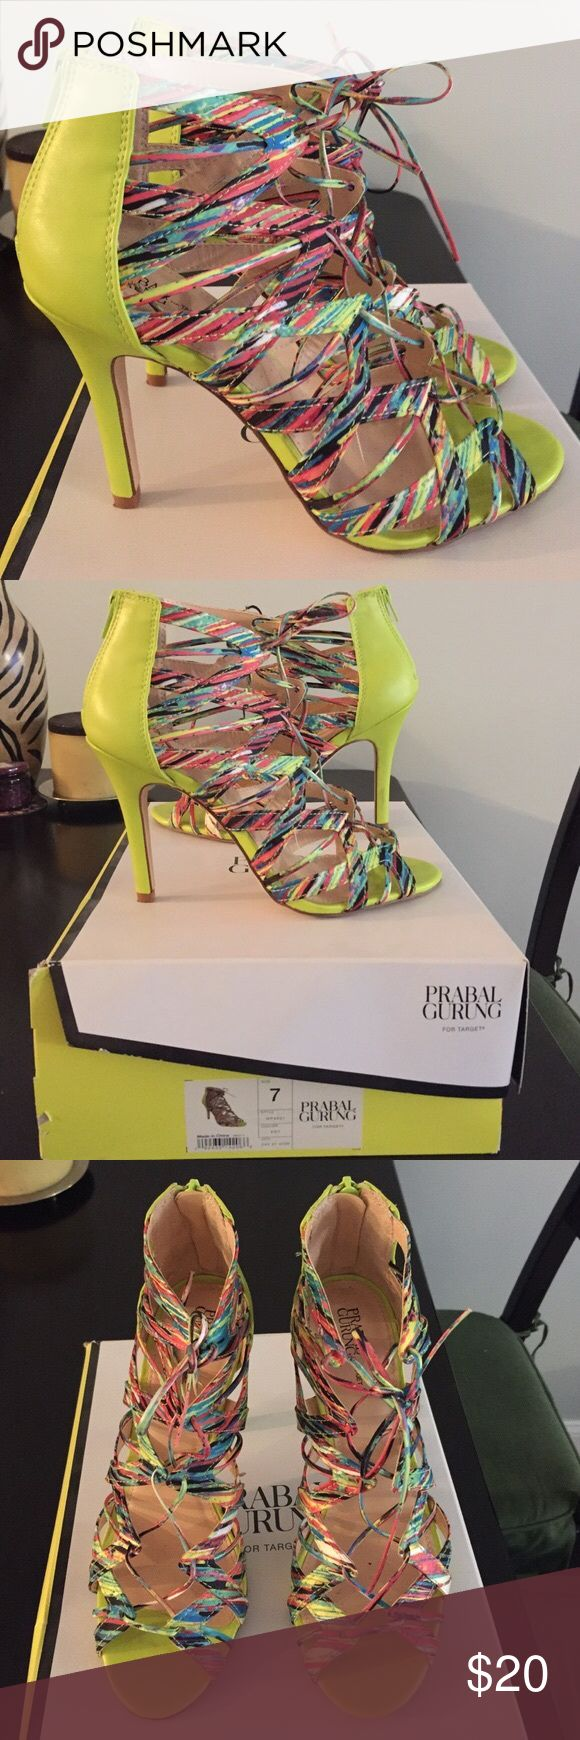 ISO Prabal Gurung Multi-colored strappy heels I'm looking for a pair of the above listed shoes in good condition in a size 8 for a reasonable price. If you have any or know anyone that may, please contact me!  I'm very interested in purchasing a pair of these heels!  Thank you!  I am wiling to pay a reasonably asked price! Prabal Gurung Shoes Heels